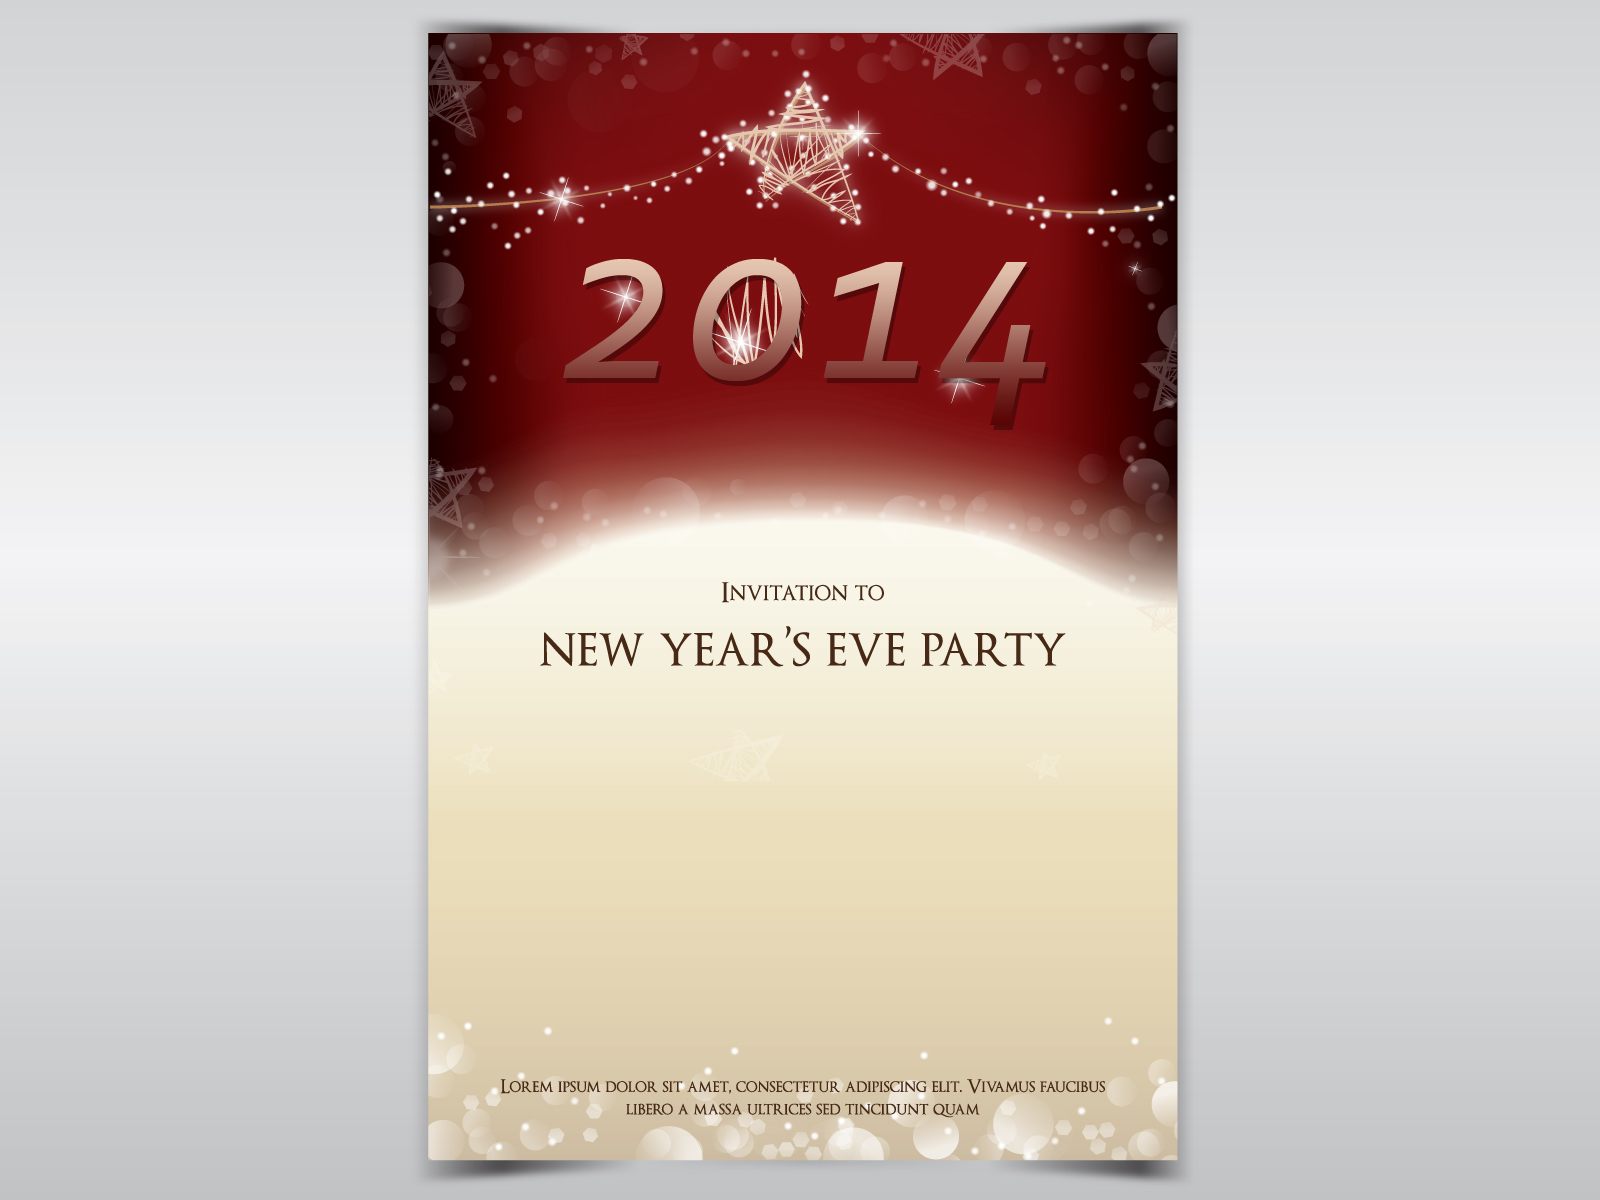 New Year Party Invitation Backgrounds - Christmas, Holiday Templates ...